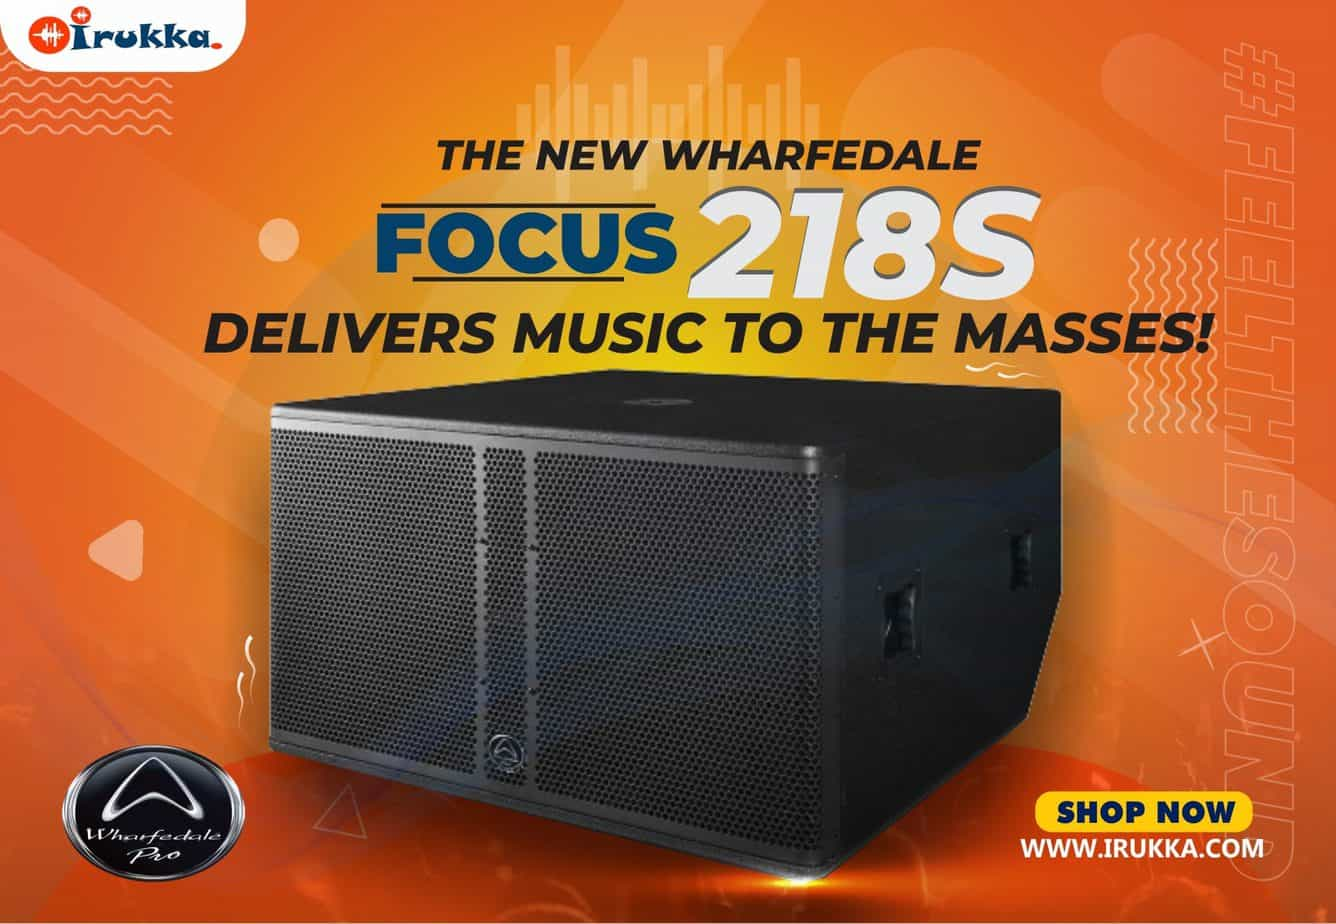 the-new-wharfedale-focus-218s-delivers-music-to-the-masses